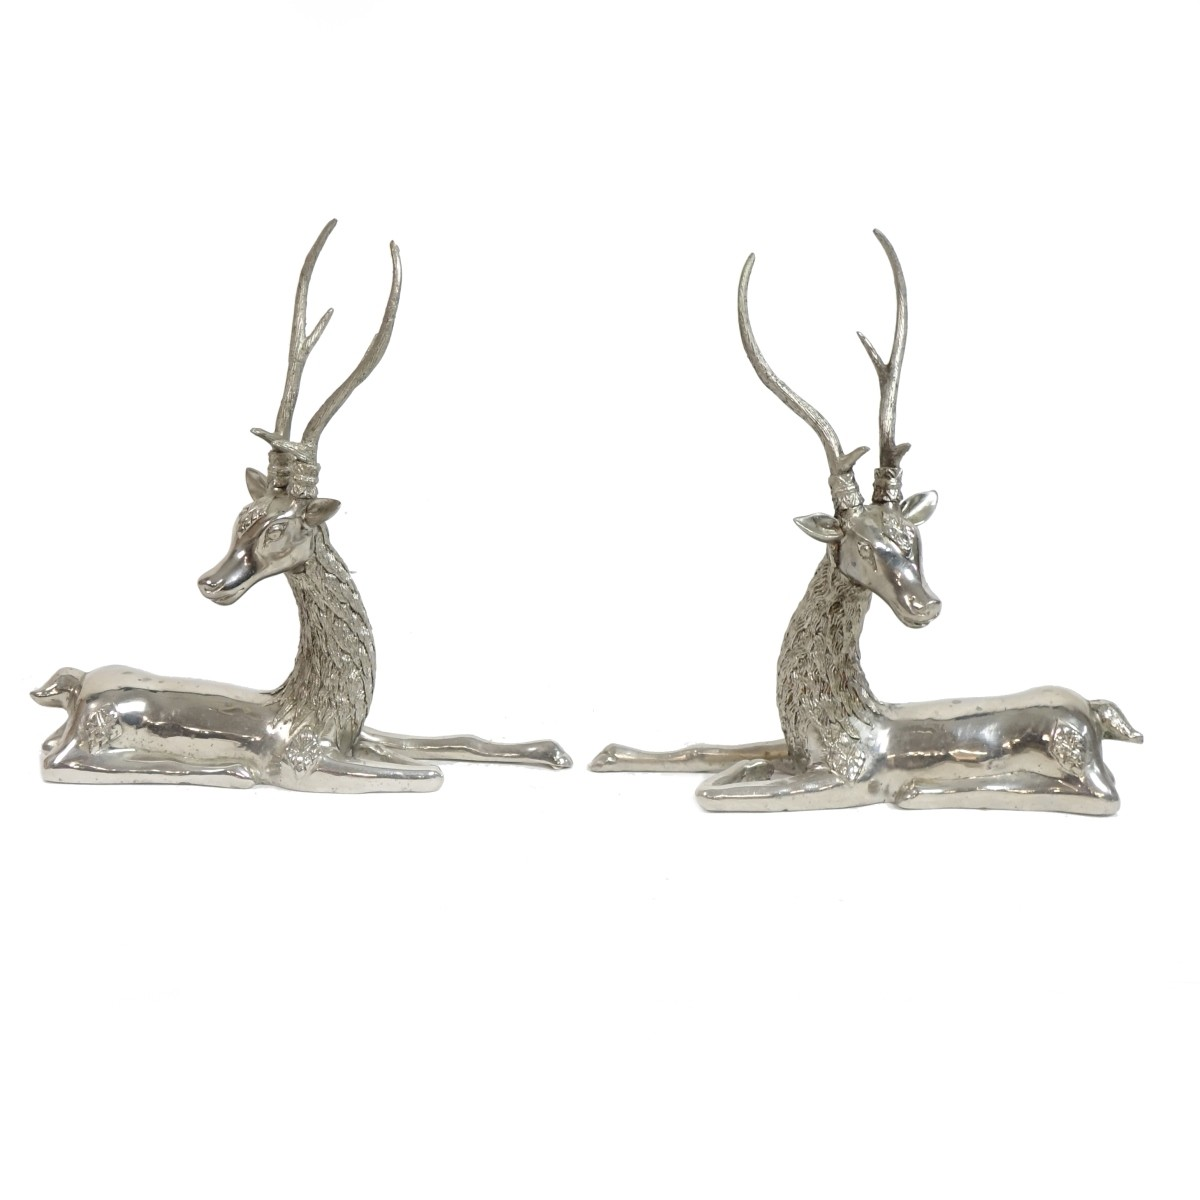 Pair of Modern Silvered Metal Deer Sculptures